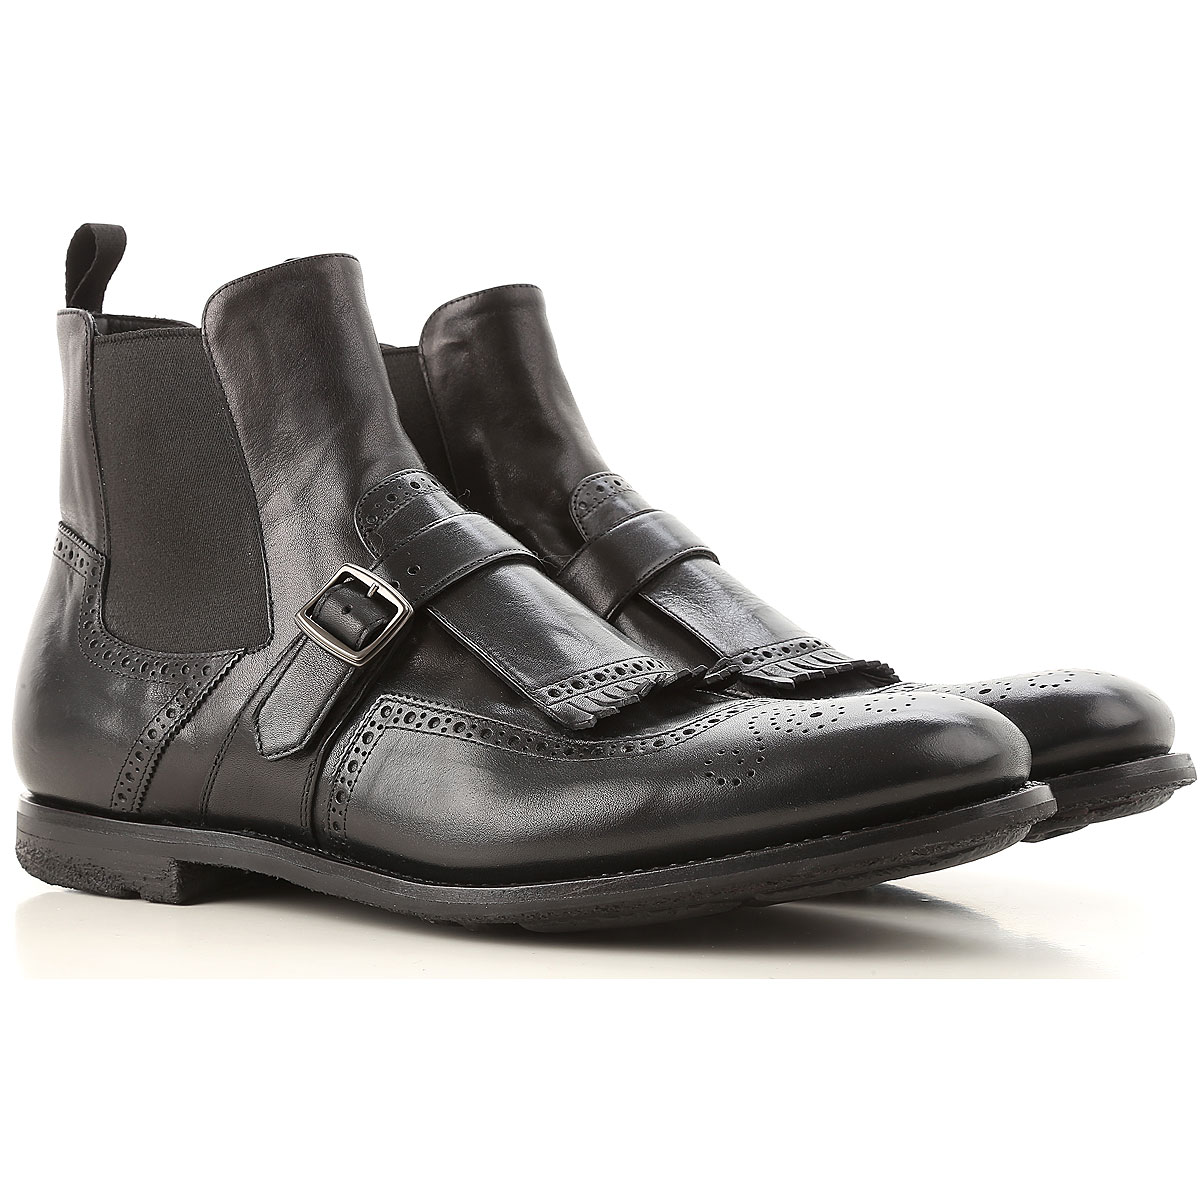 Image of Church's Boots for Men, Booties, Black, Leather, 2017, 10 7 8 9 9.5